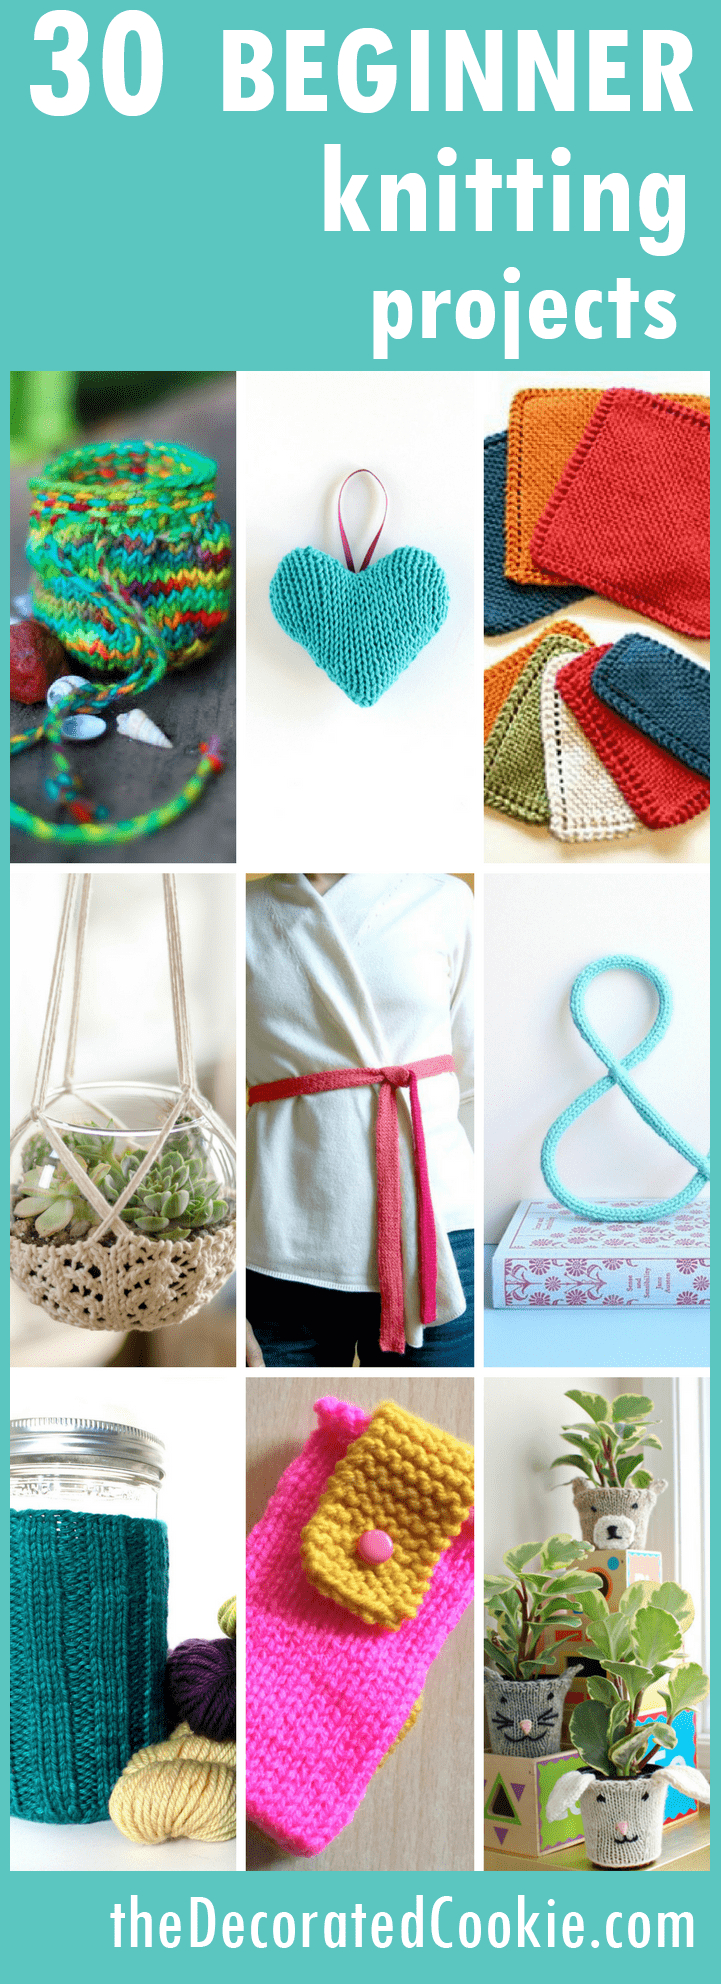 Knitted Scarf Patterns Pinterest Knitting For Beginners A Roundup Of 20 Easy Knitting Projects